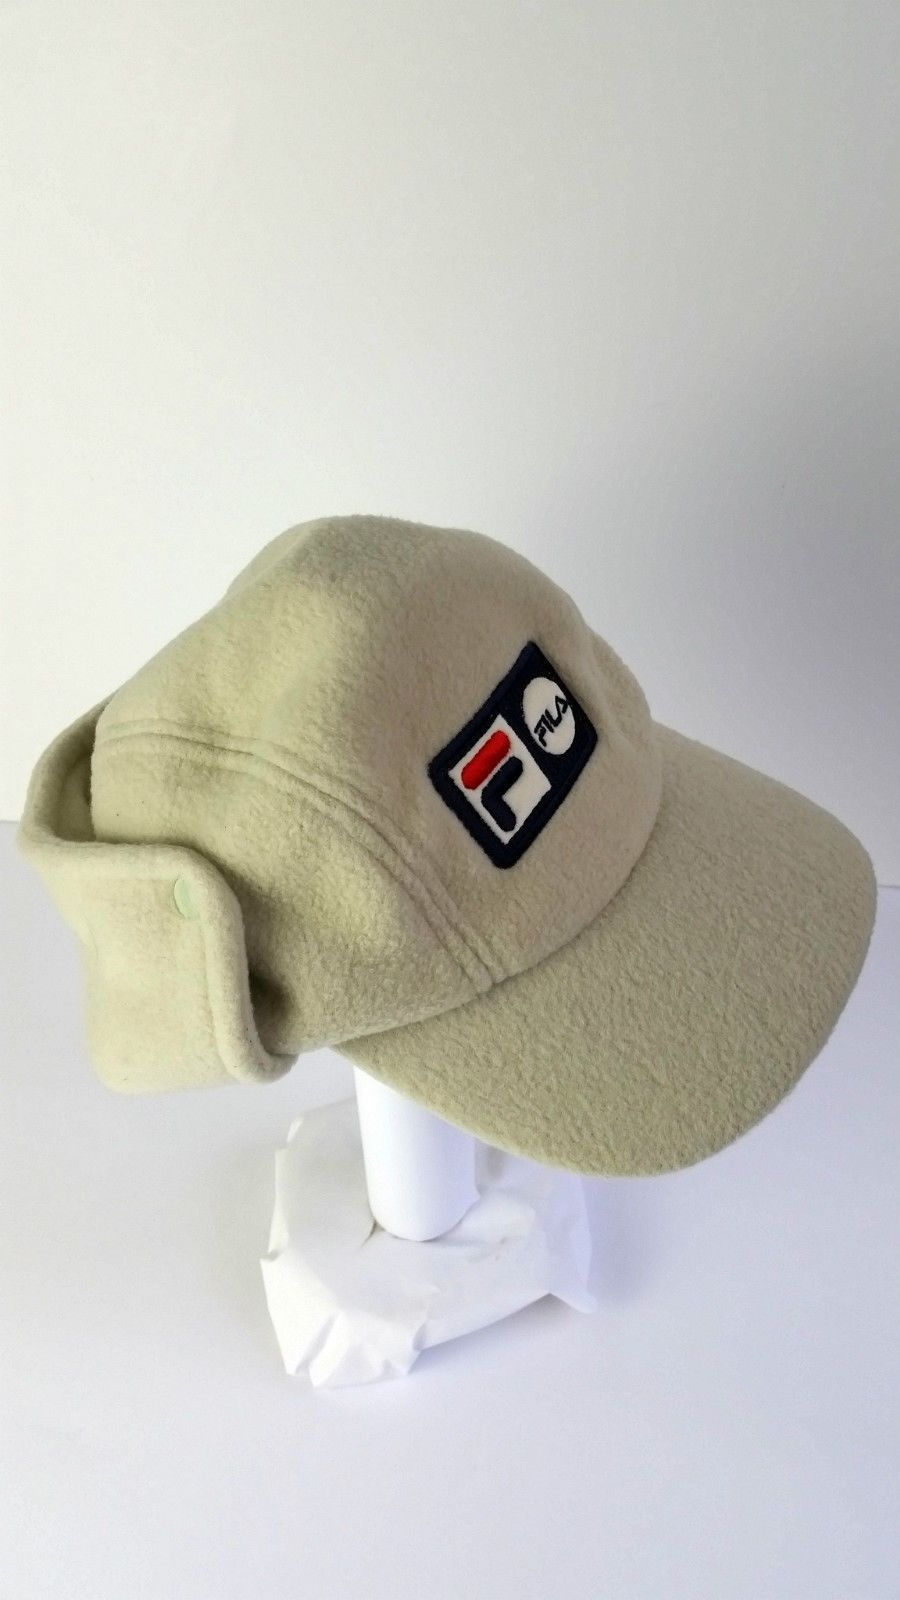 NEW FILA MENS POLAR FLEECE CAP WINTER EAR NECK COVER ADULT BEIGE HAT NEW  55406a8d0f4a